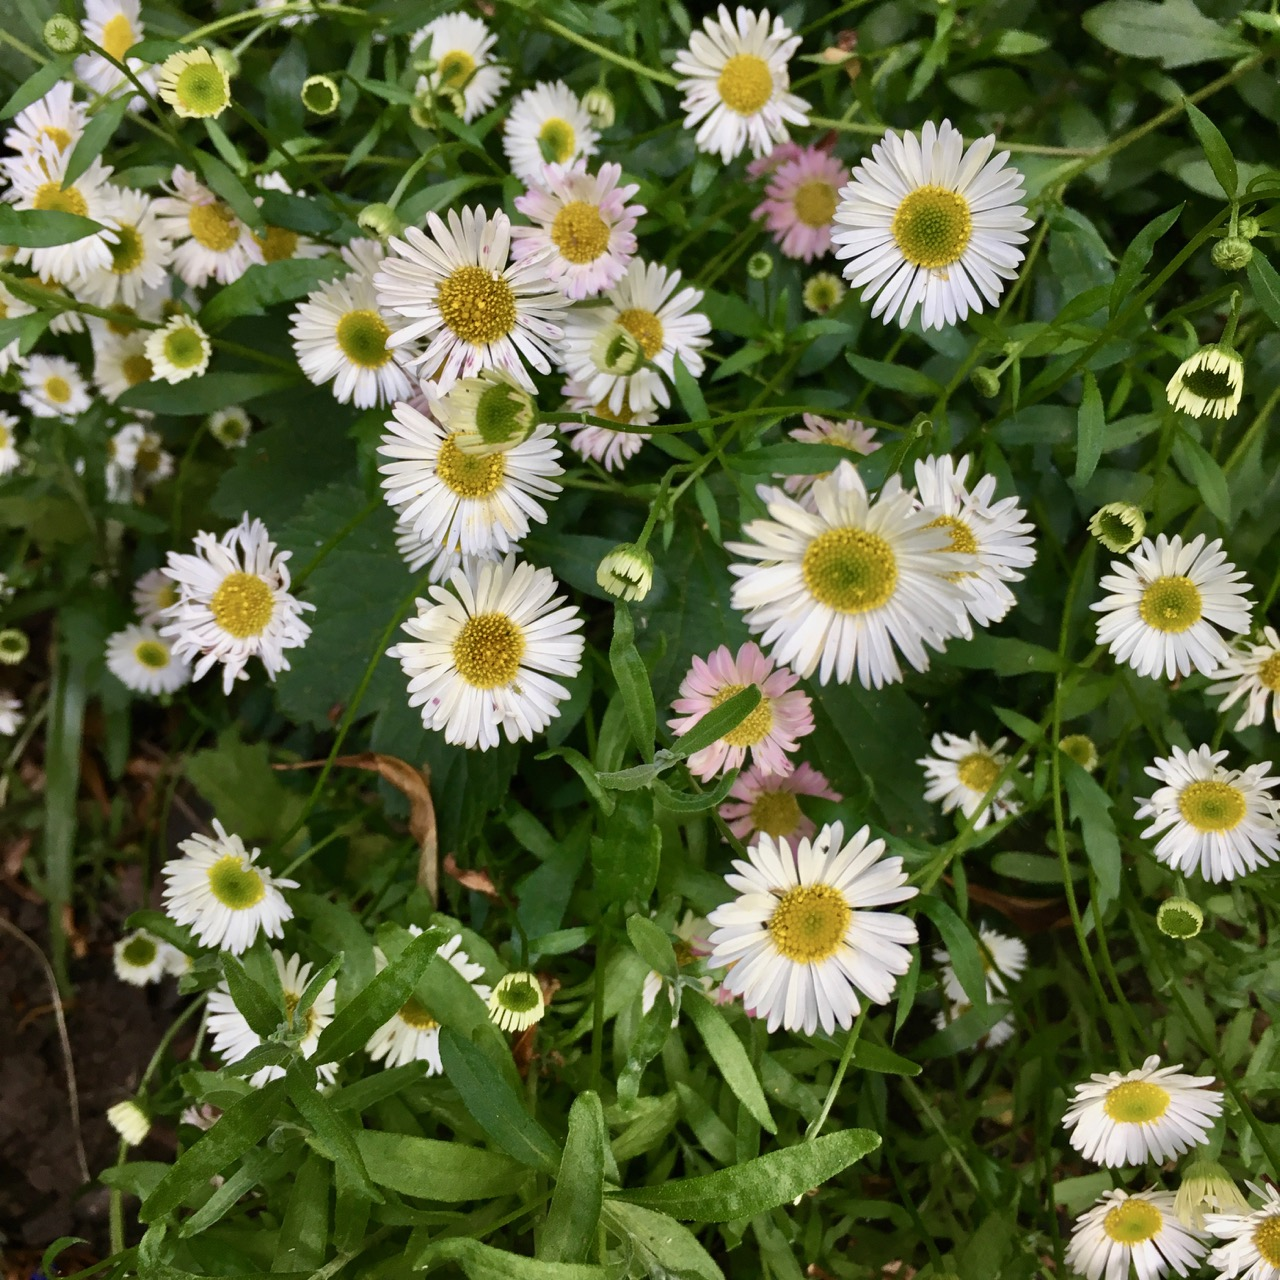 daisies in the flowerbed